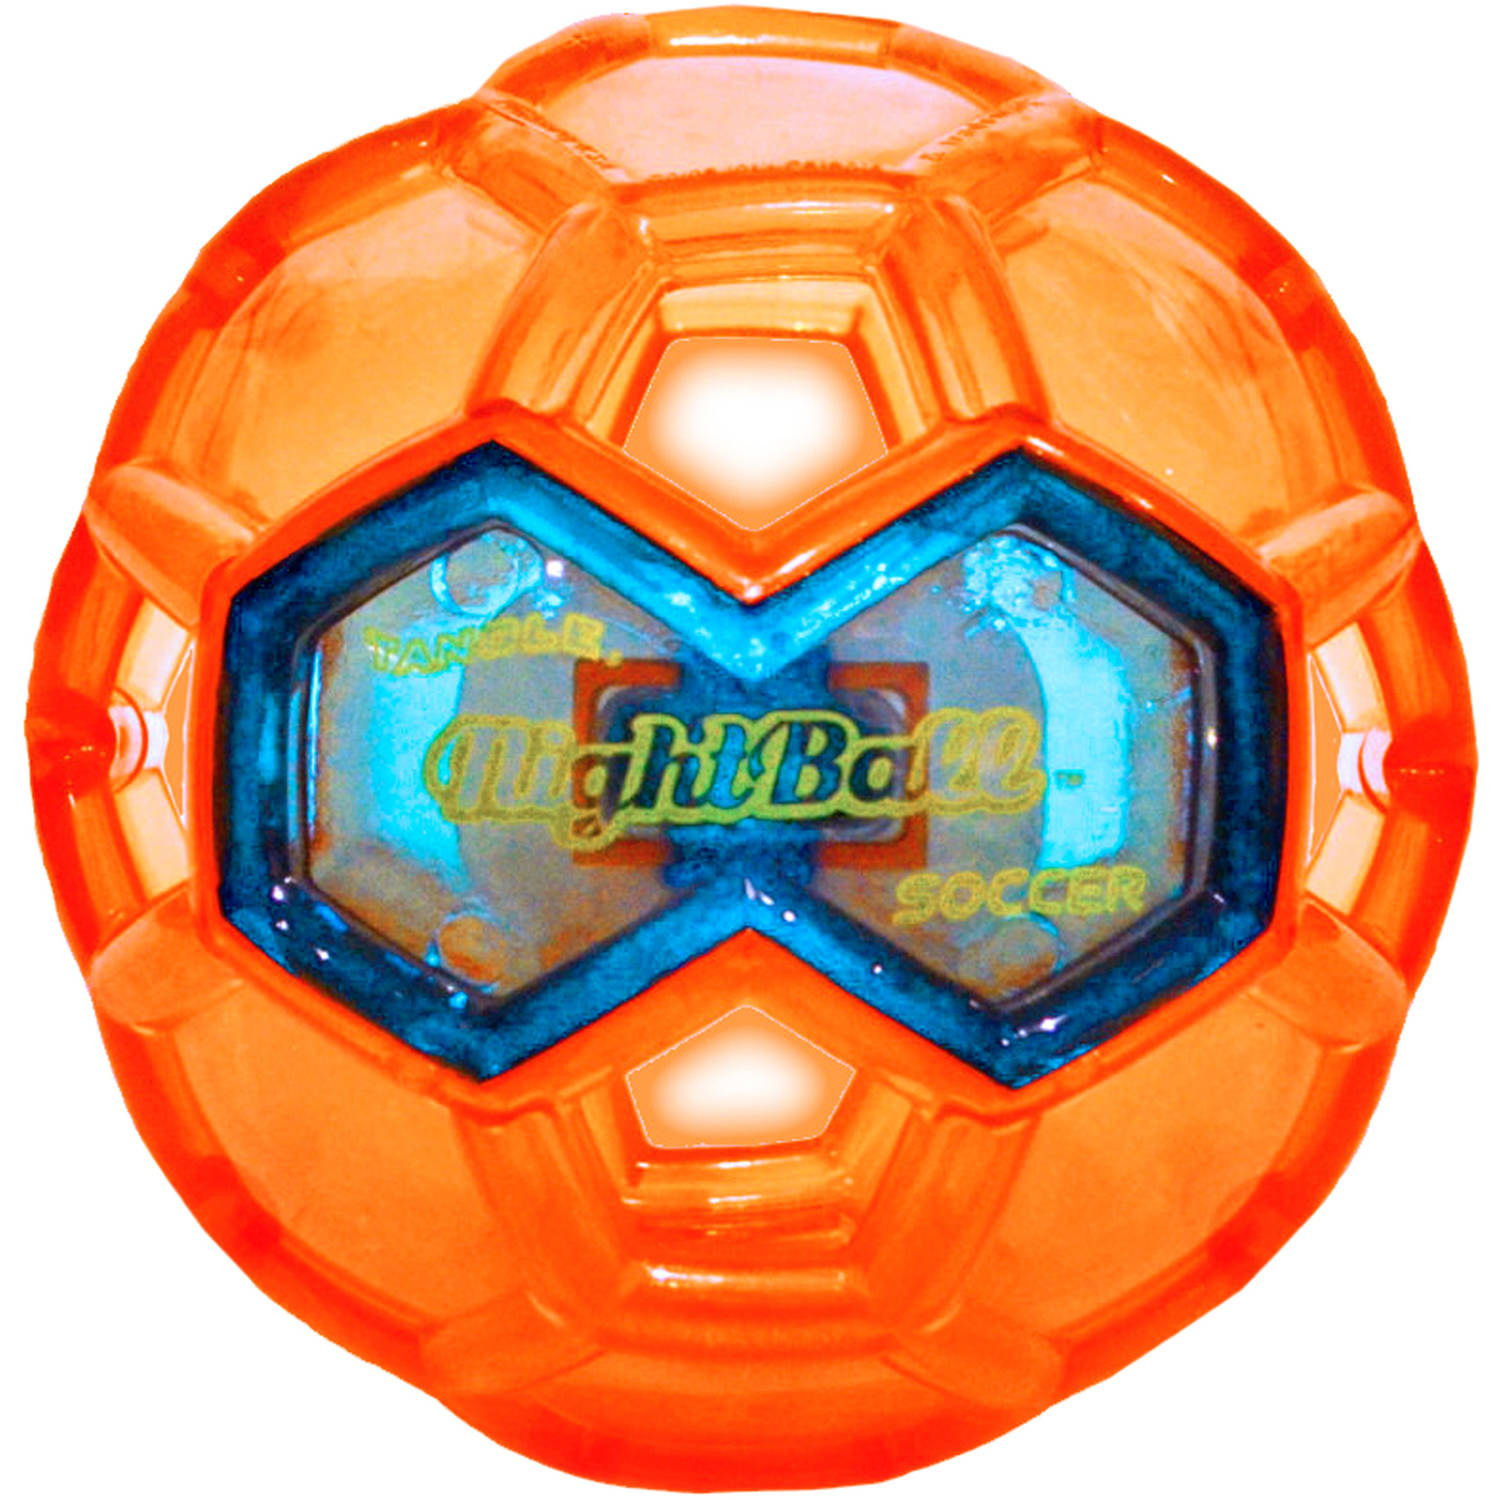 Tangle LED Night Ball Soccer Ball